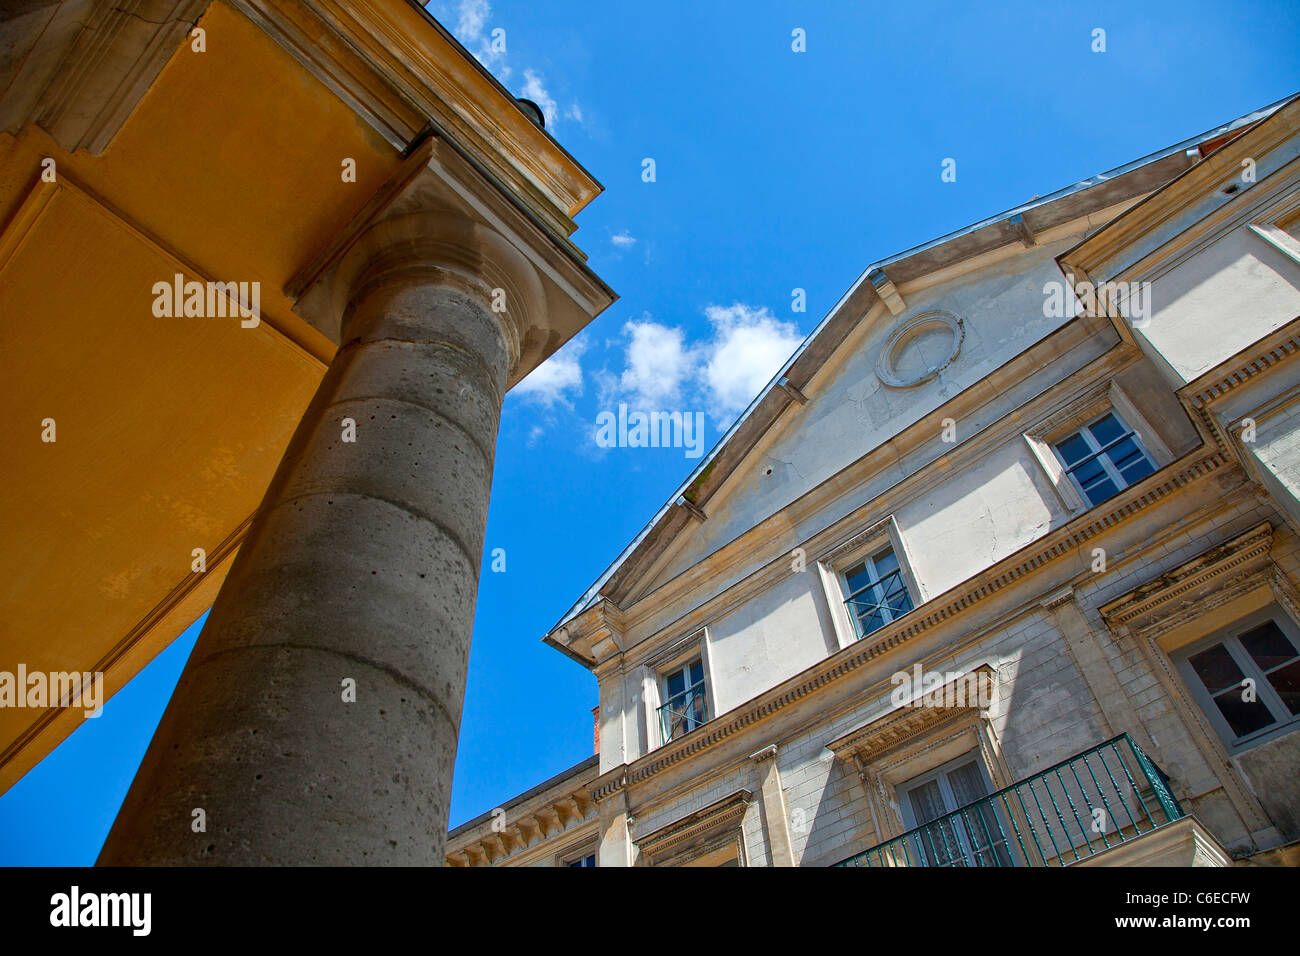 Europe, France, Yvelines (78), Rambouillet, palais du Roi de Rome (Palace of the King of Rome) Stock Photo